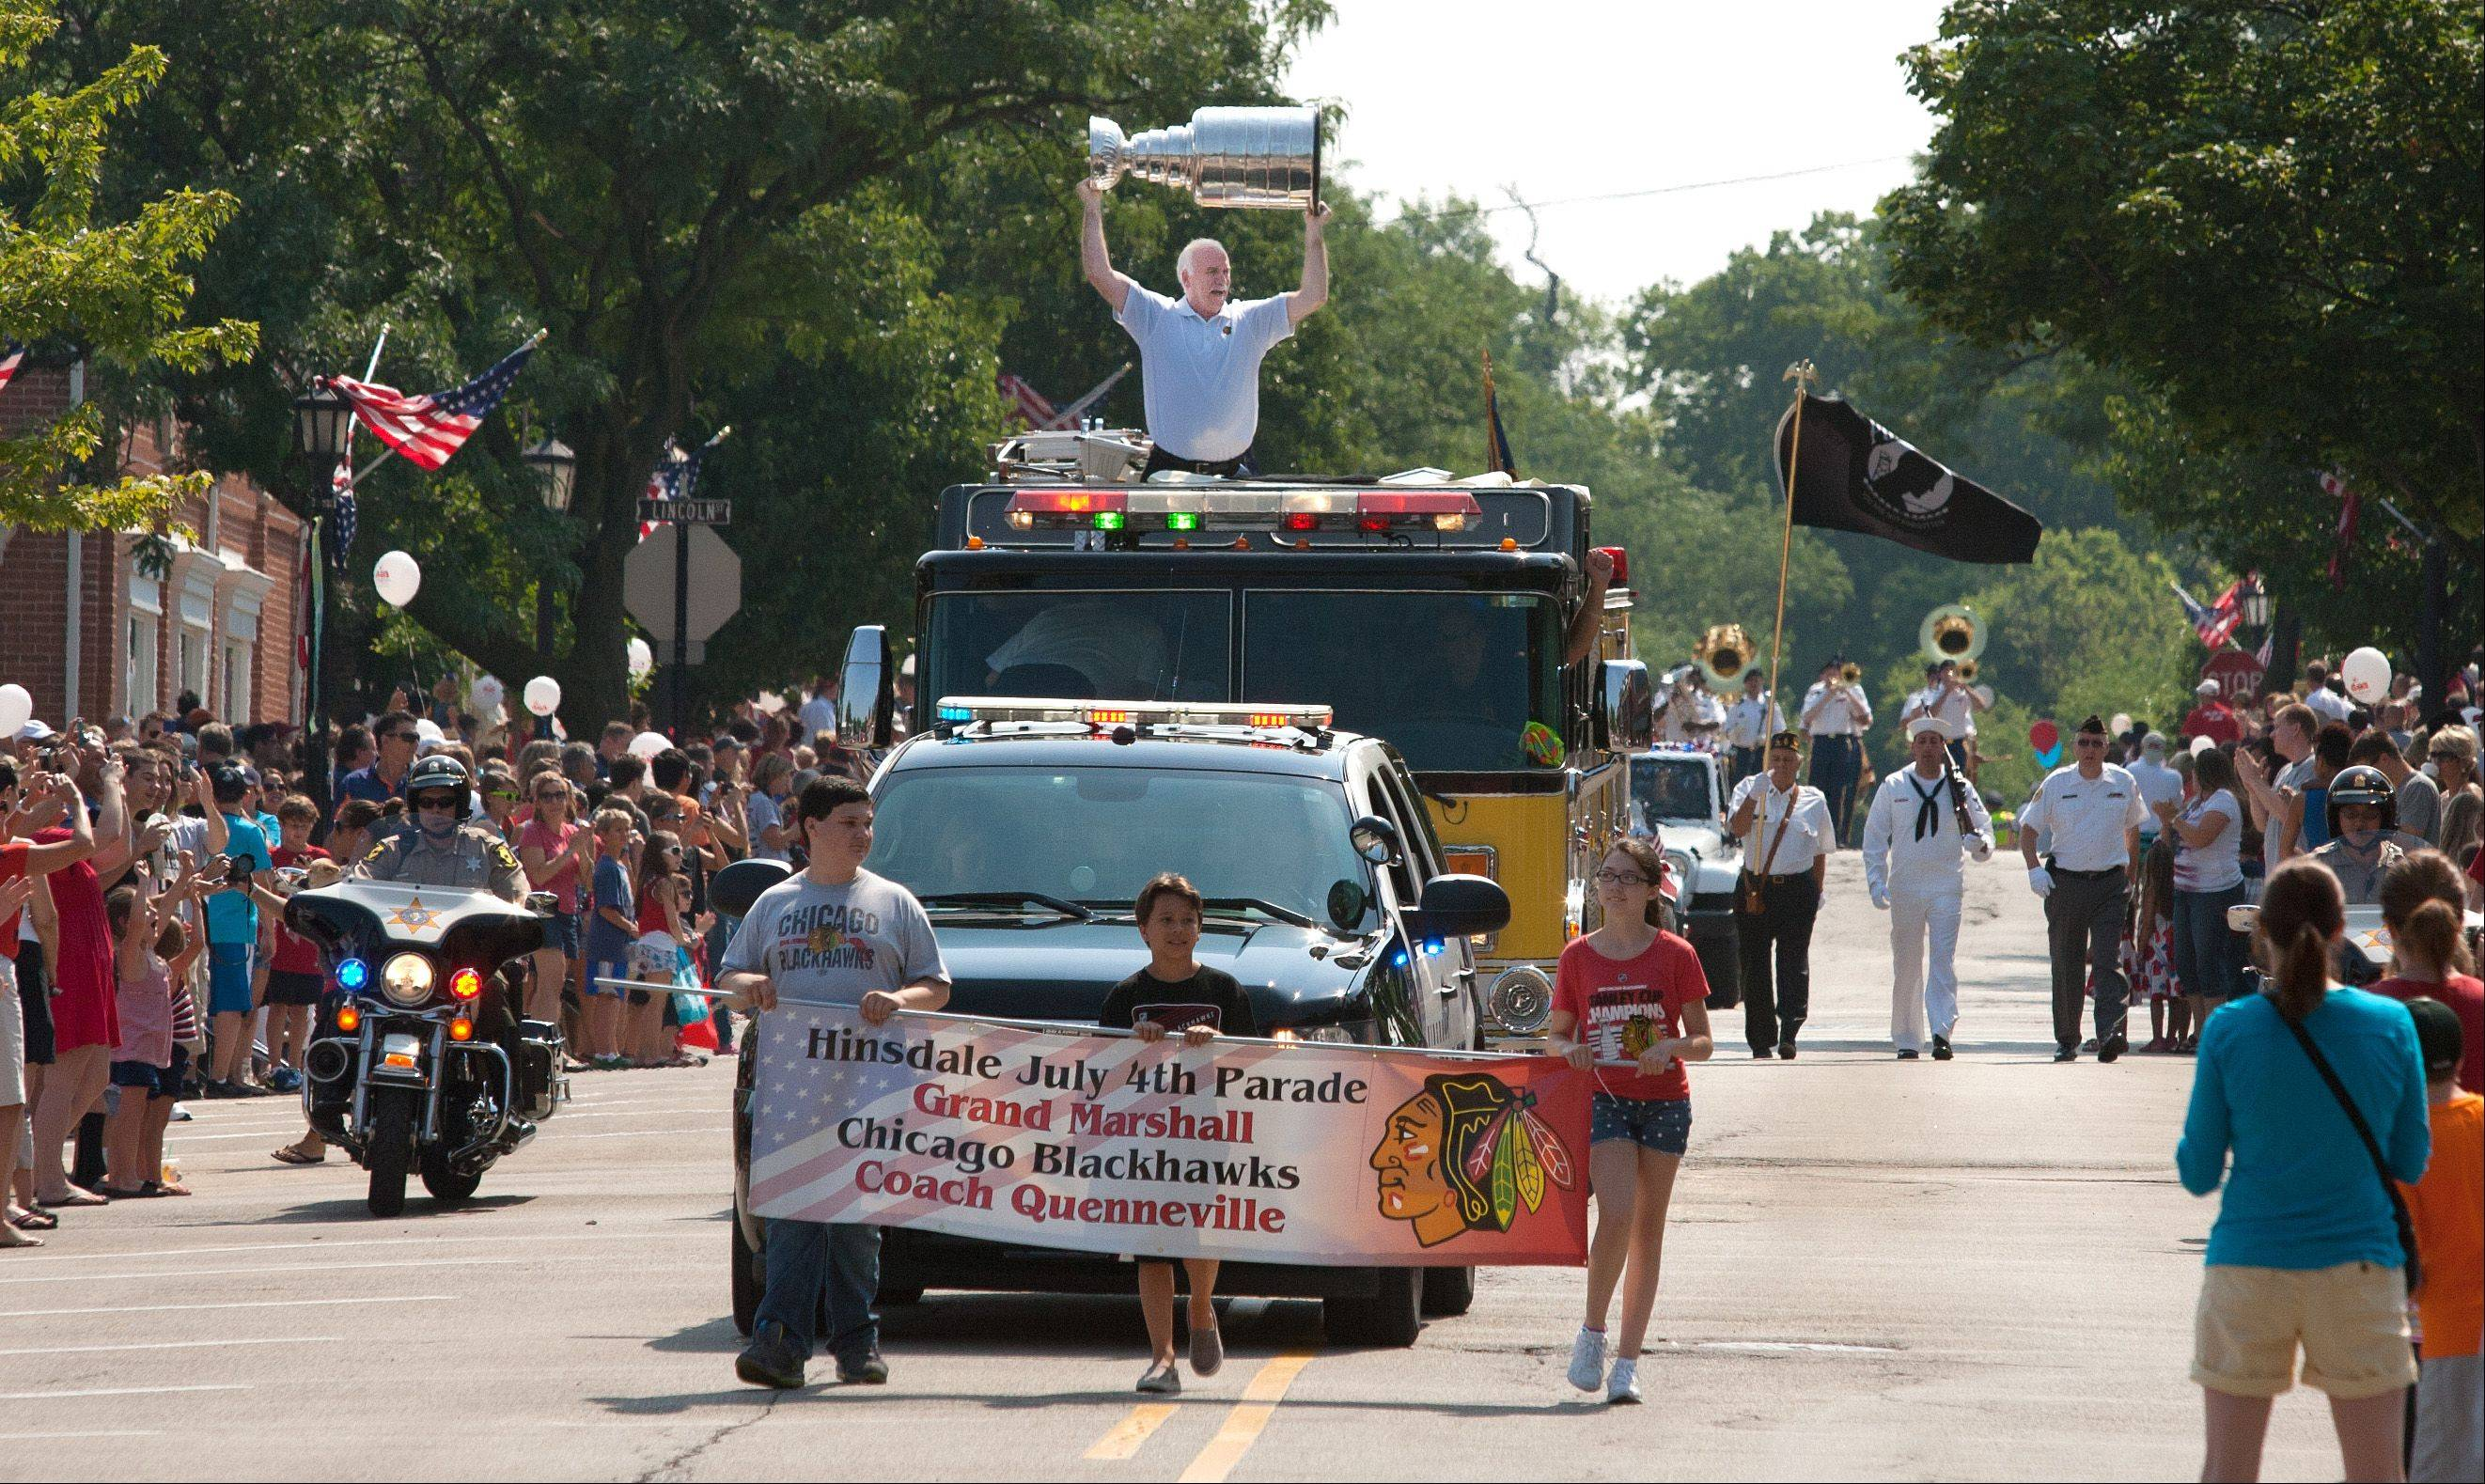 Chicago Blackhawks coach Joel Quenneville celebrates a Stanley Cup victory, as the grand marshall thrills his hometown Hinsdale July 4th parade route.